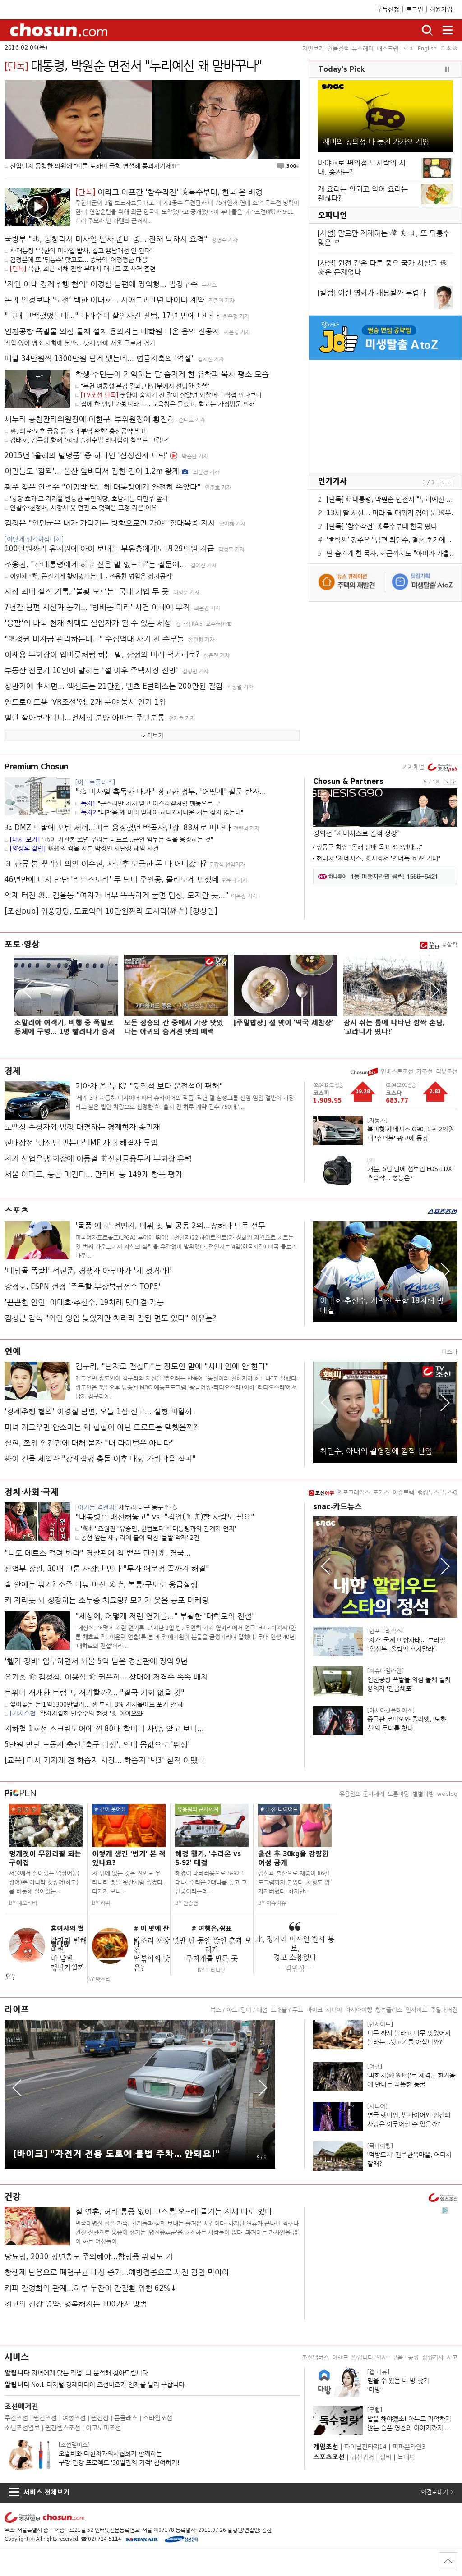 chosun.com at Thursday Feb. 4, 2016, 3:02 a.m. UTC